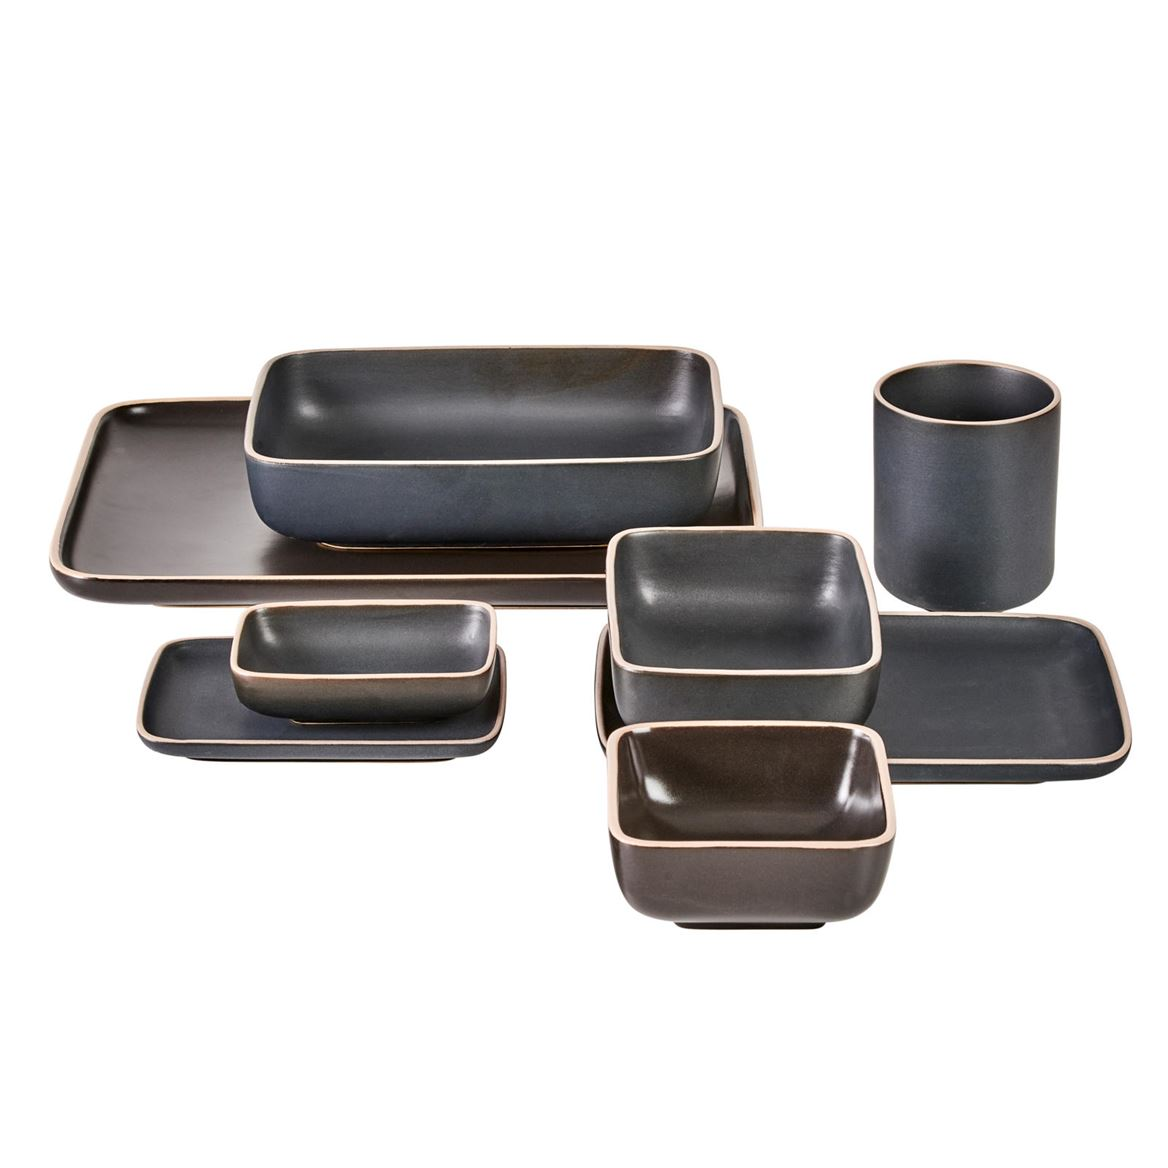 ELEMENTS Tigela preto H 5 x W 20 x L 14,2 cm_elements-tigela-preto-h-5-x-w-20-x-l-14,2-cm